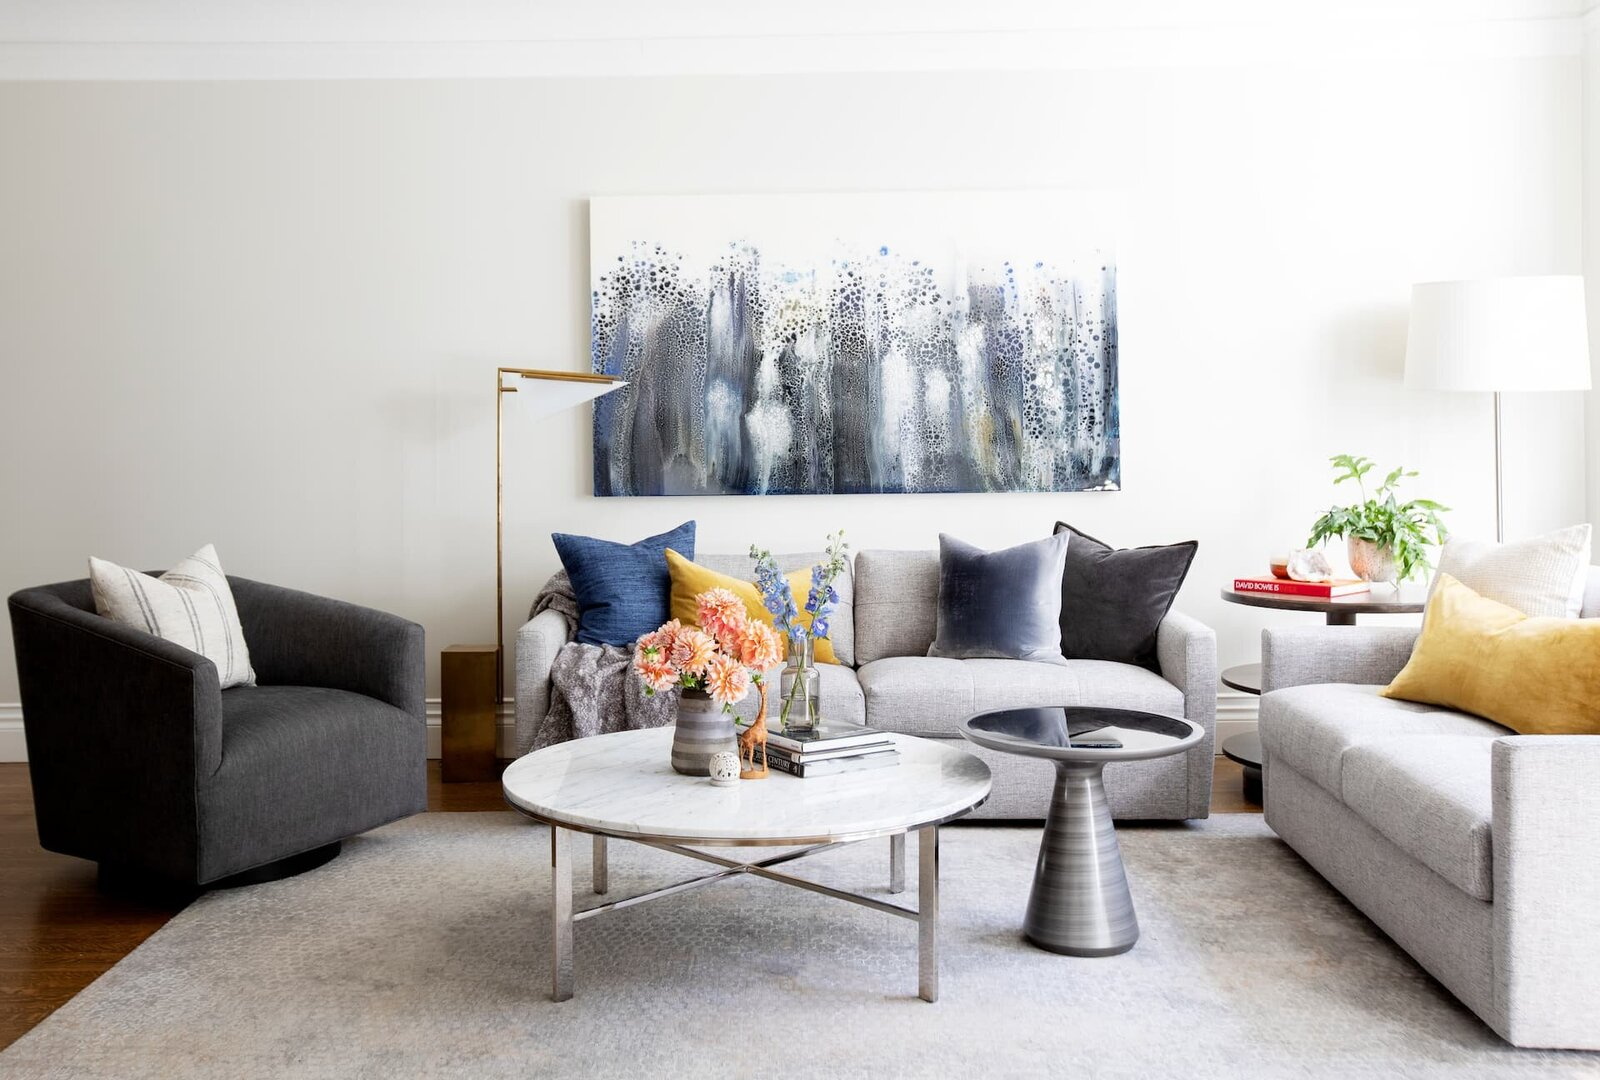 Granville Street l Living-TV Room l Conversational Seating Area of Grey Sofas and Chair with Coffee Table Layering